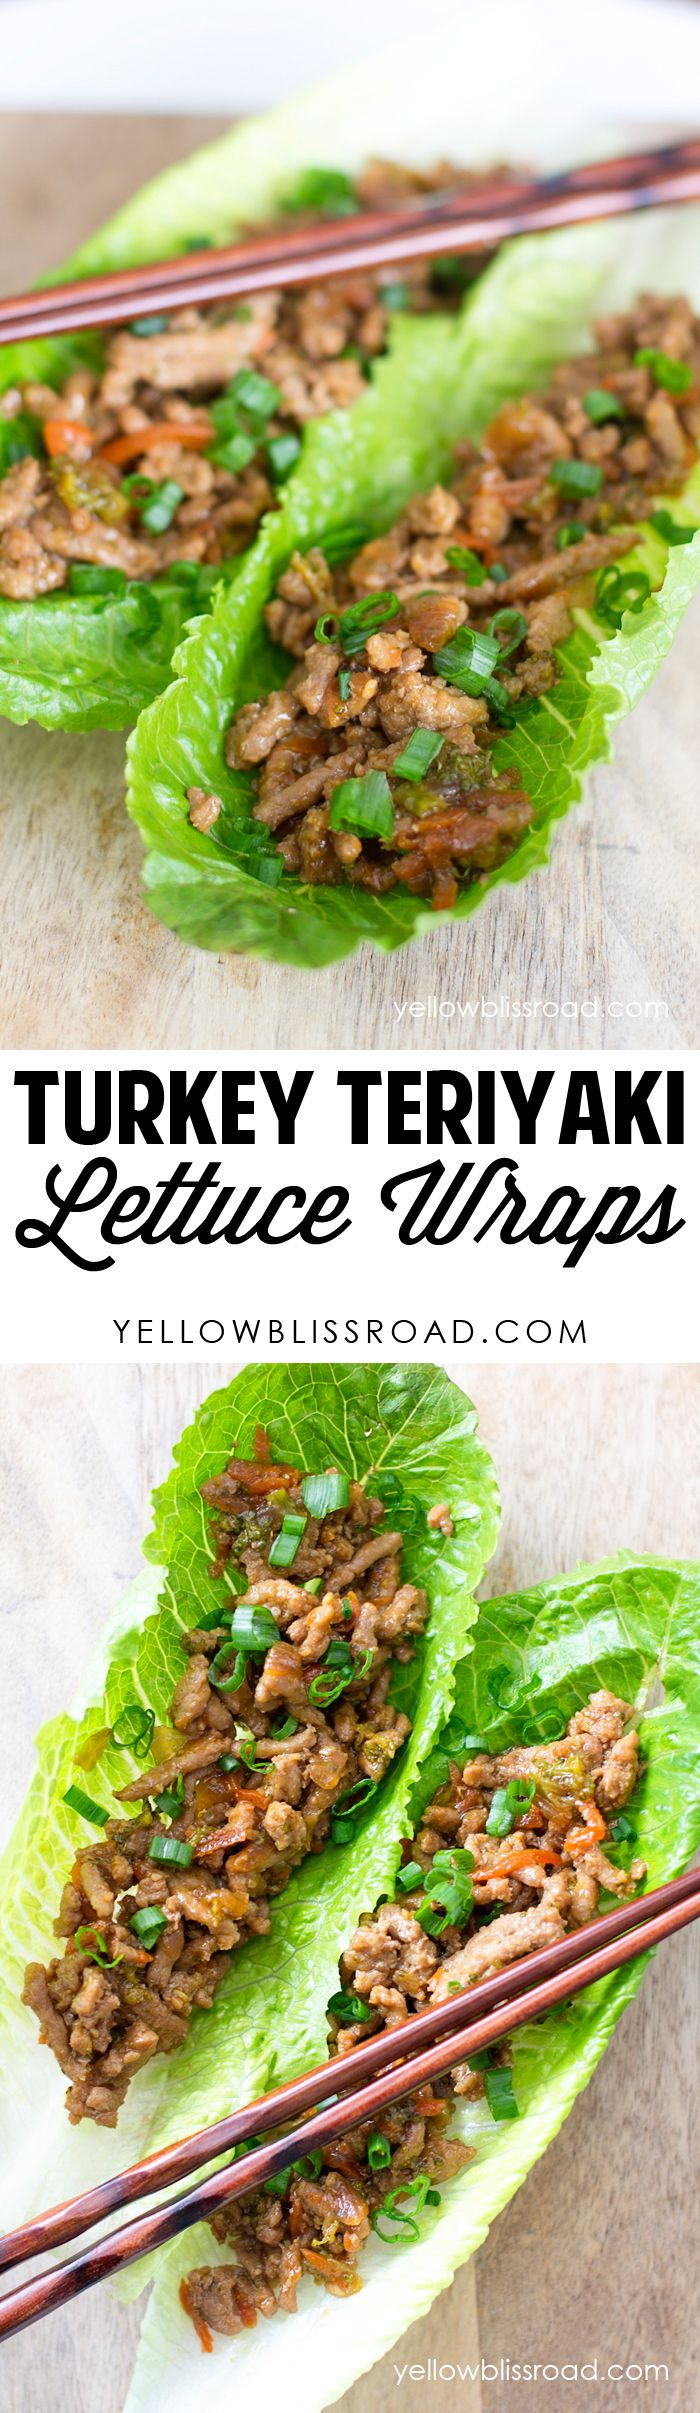 Turkey Teriyaki Lettuce wrap